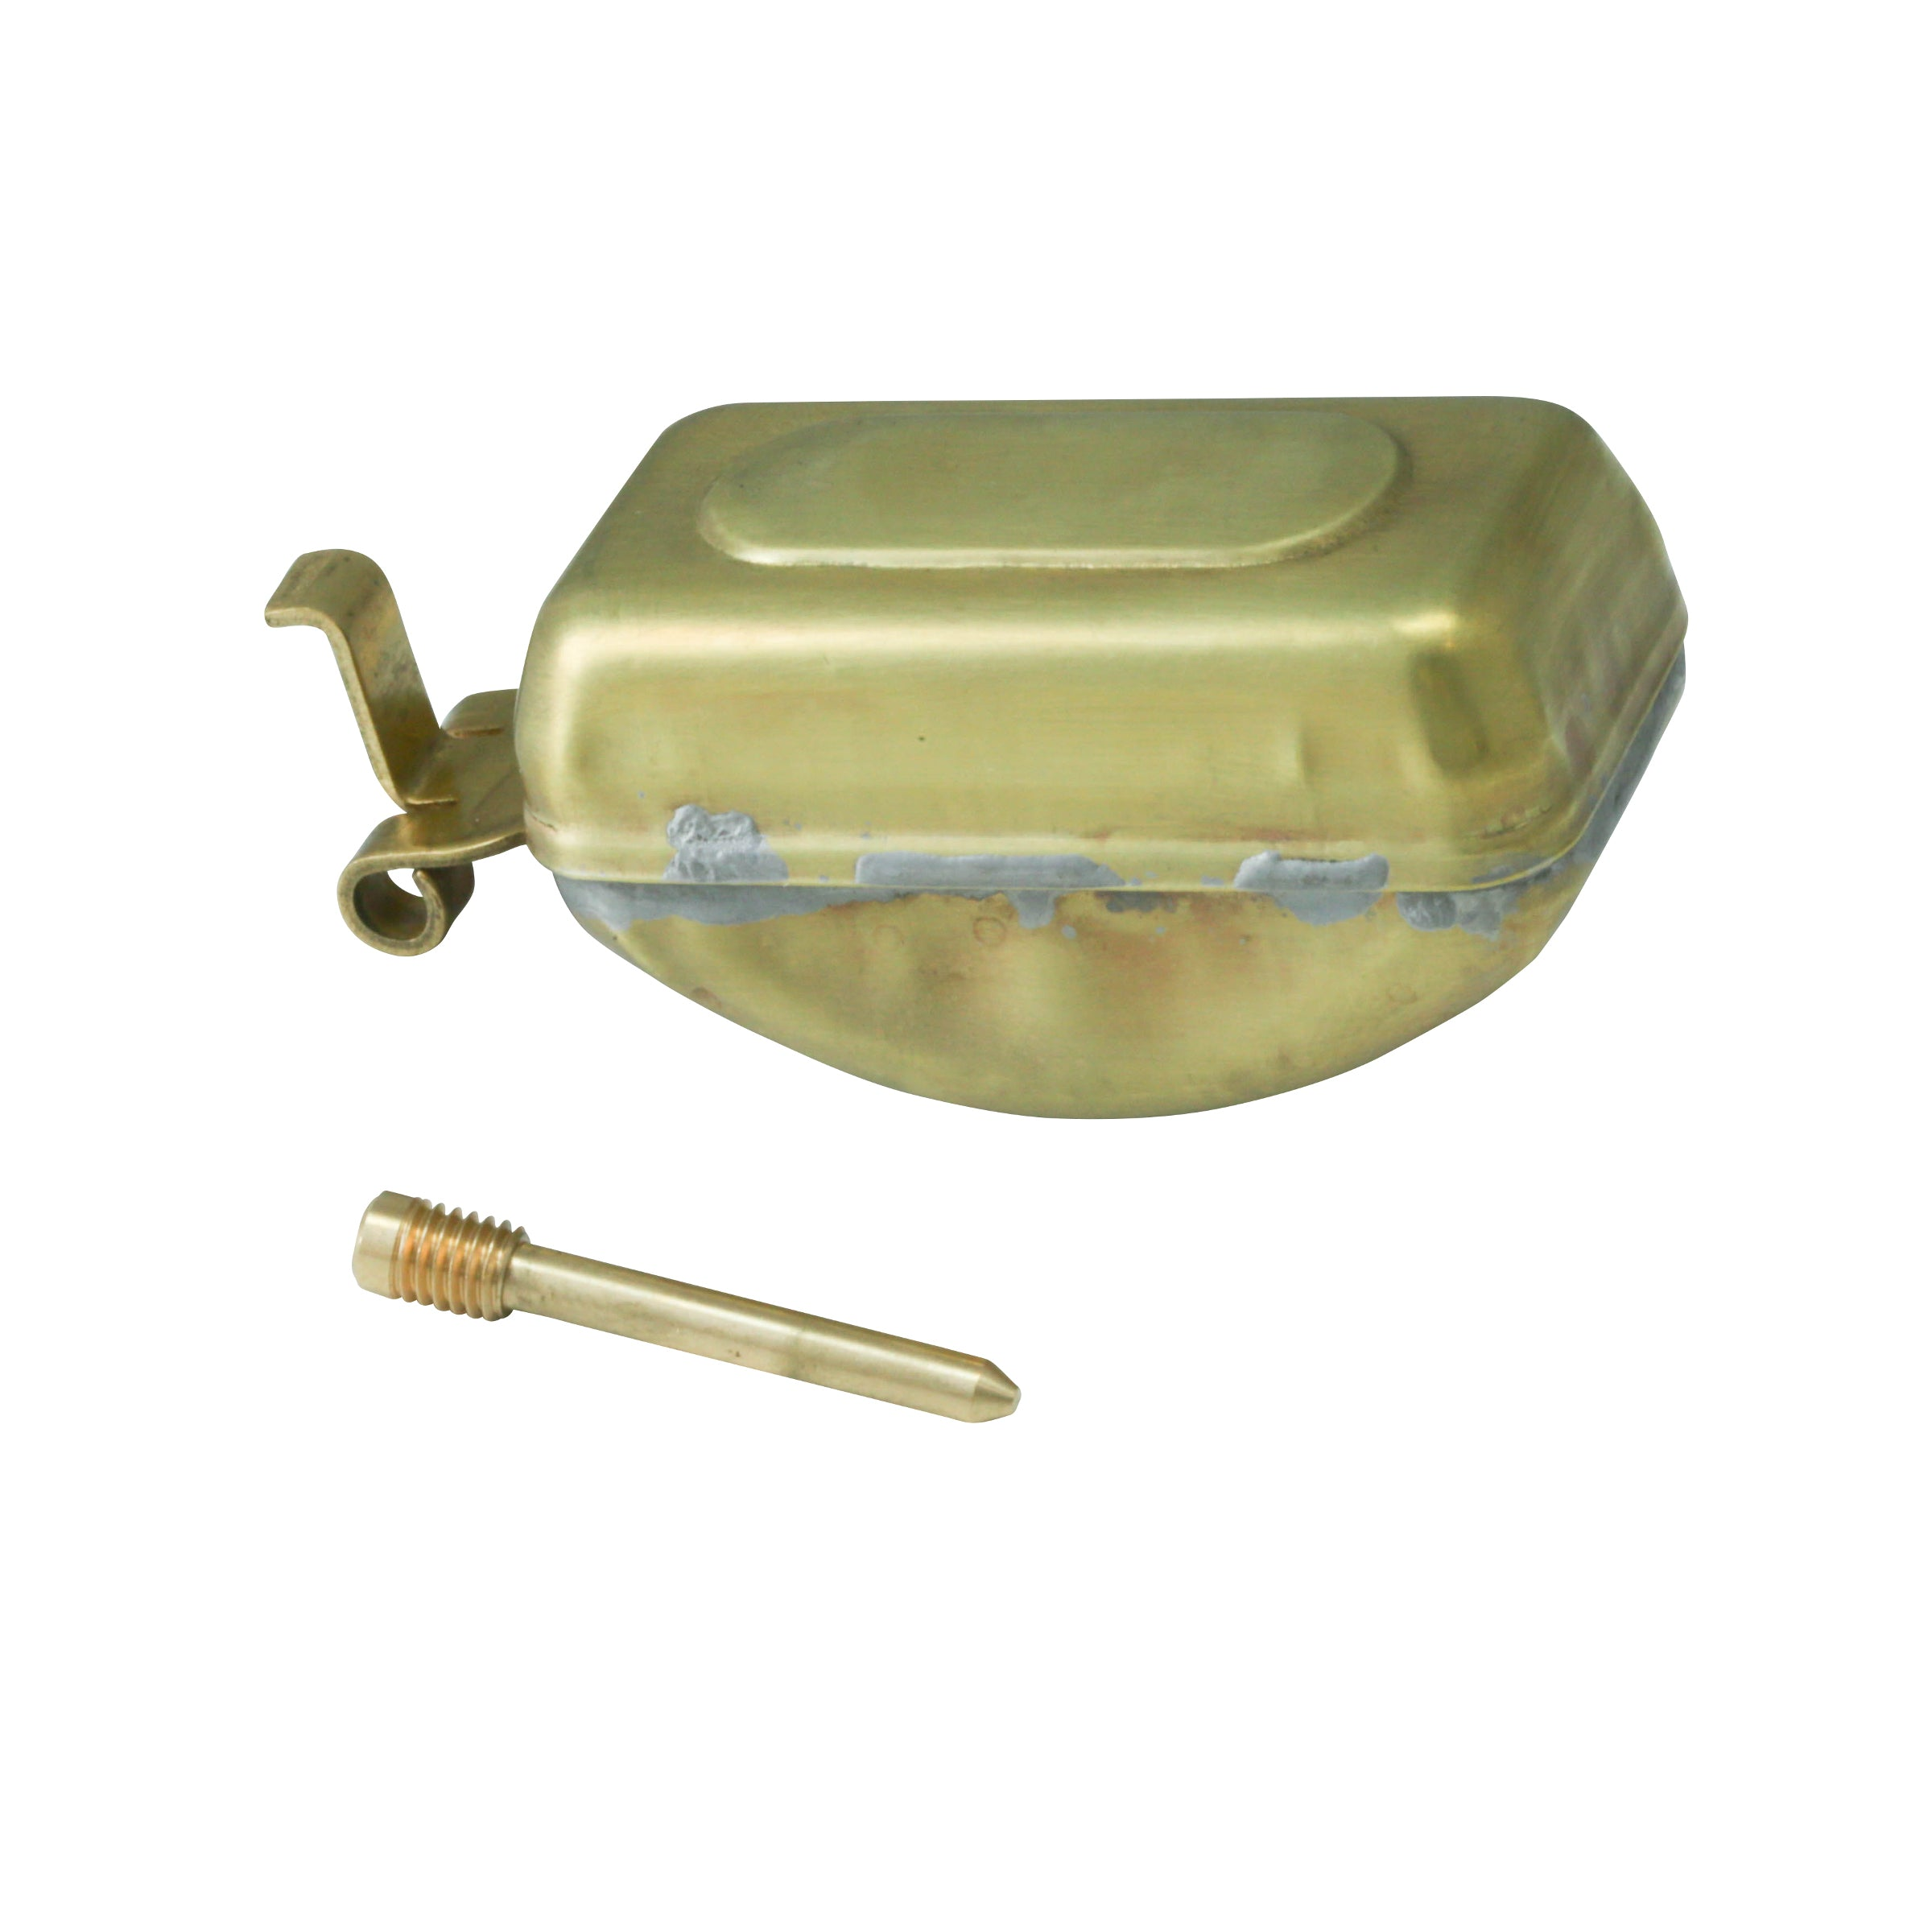 Genuine Stromberg 97 Carburetor Brass Float & Hinge Pin